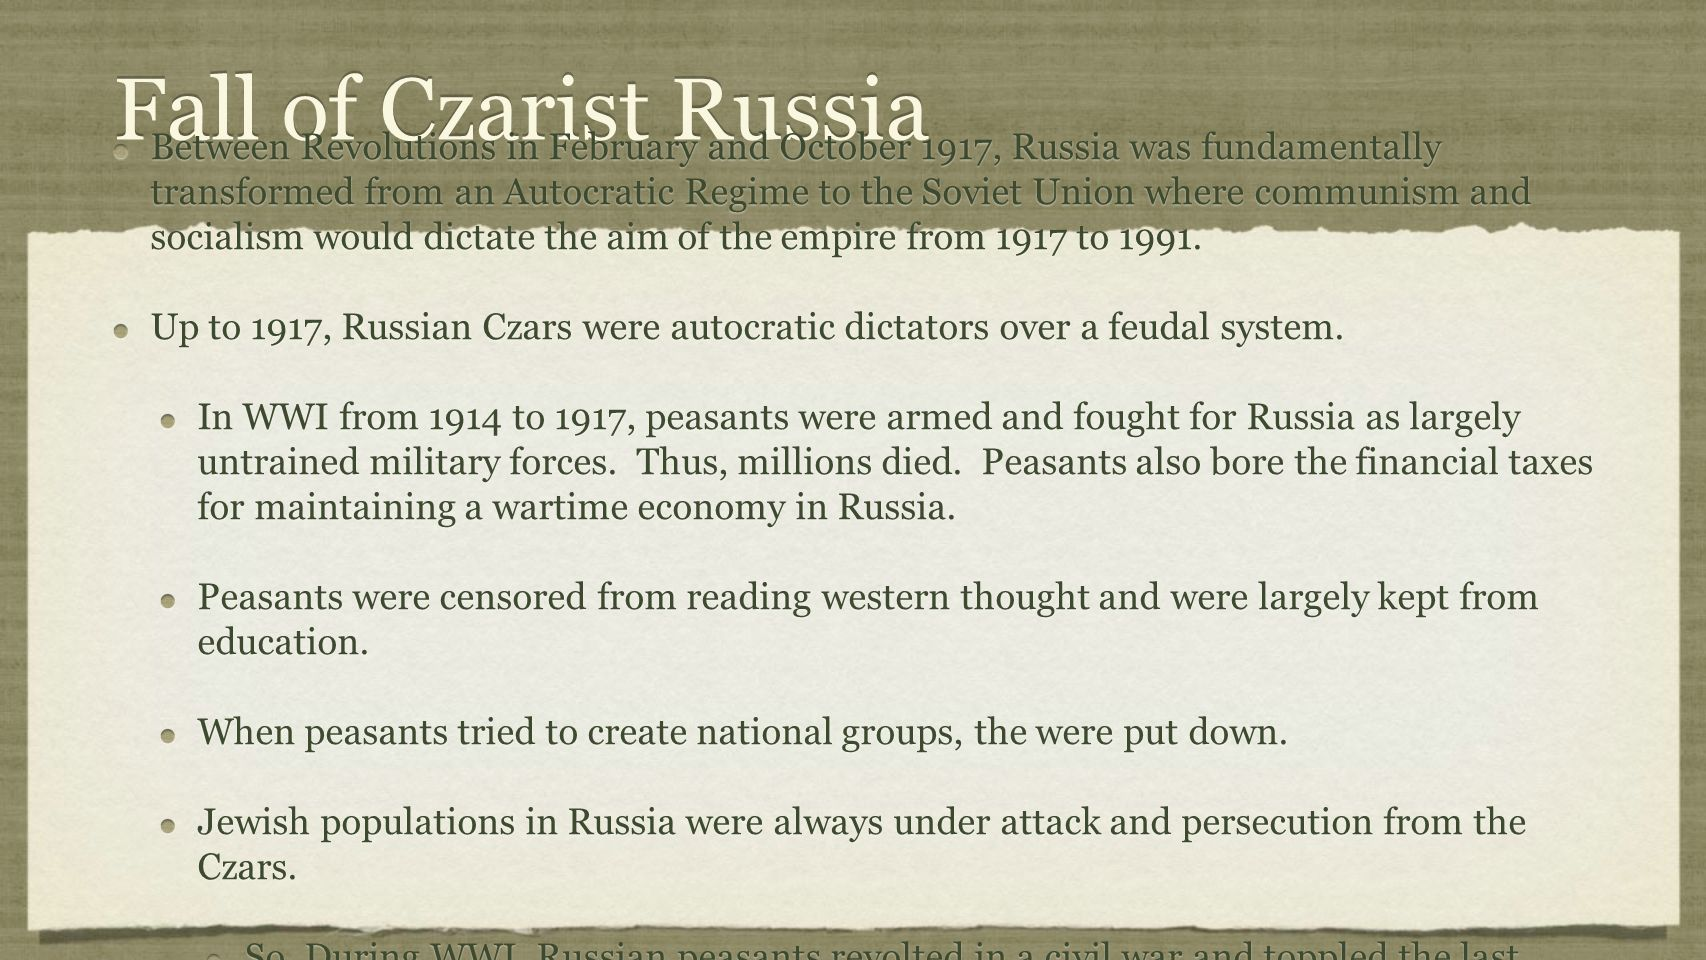 Fall of Czarist Russia Between Revolutions in February and October 1917, Russia was fundamentally transformed from an Autocratic Regime to the Soviet